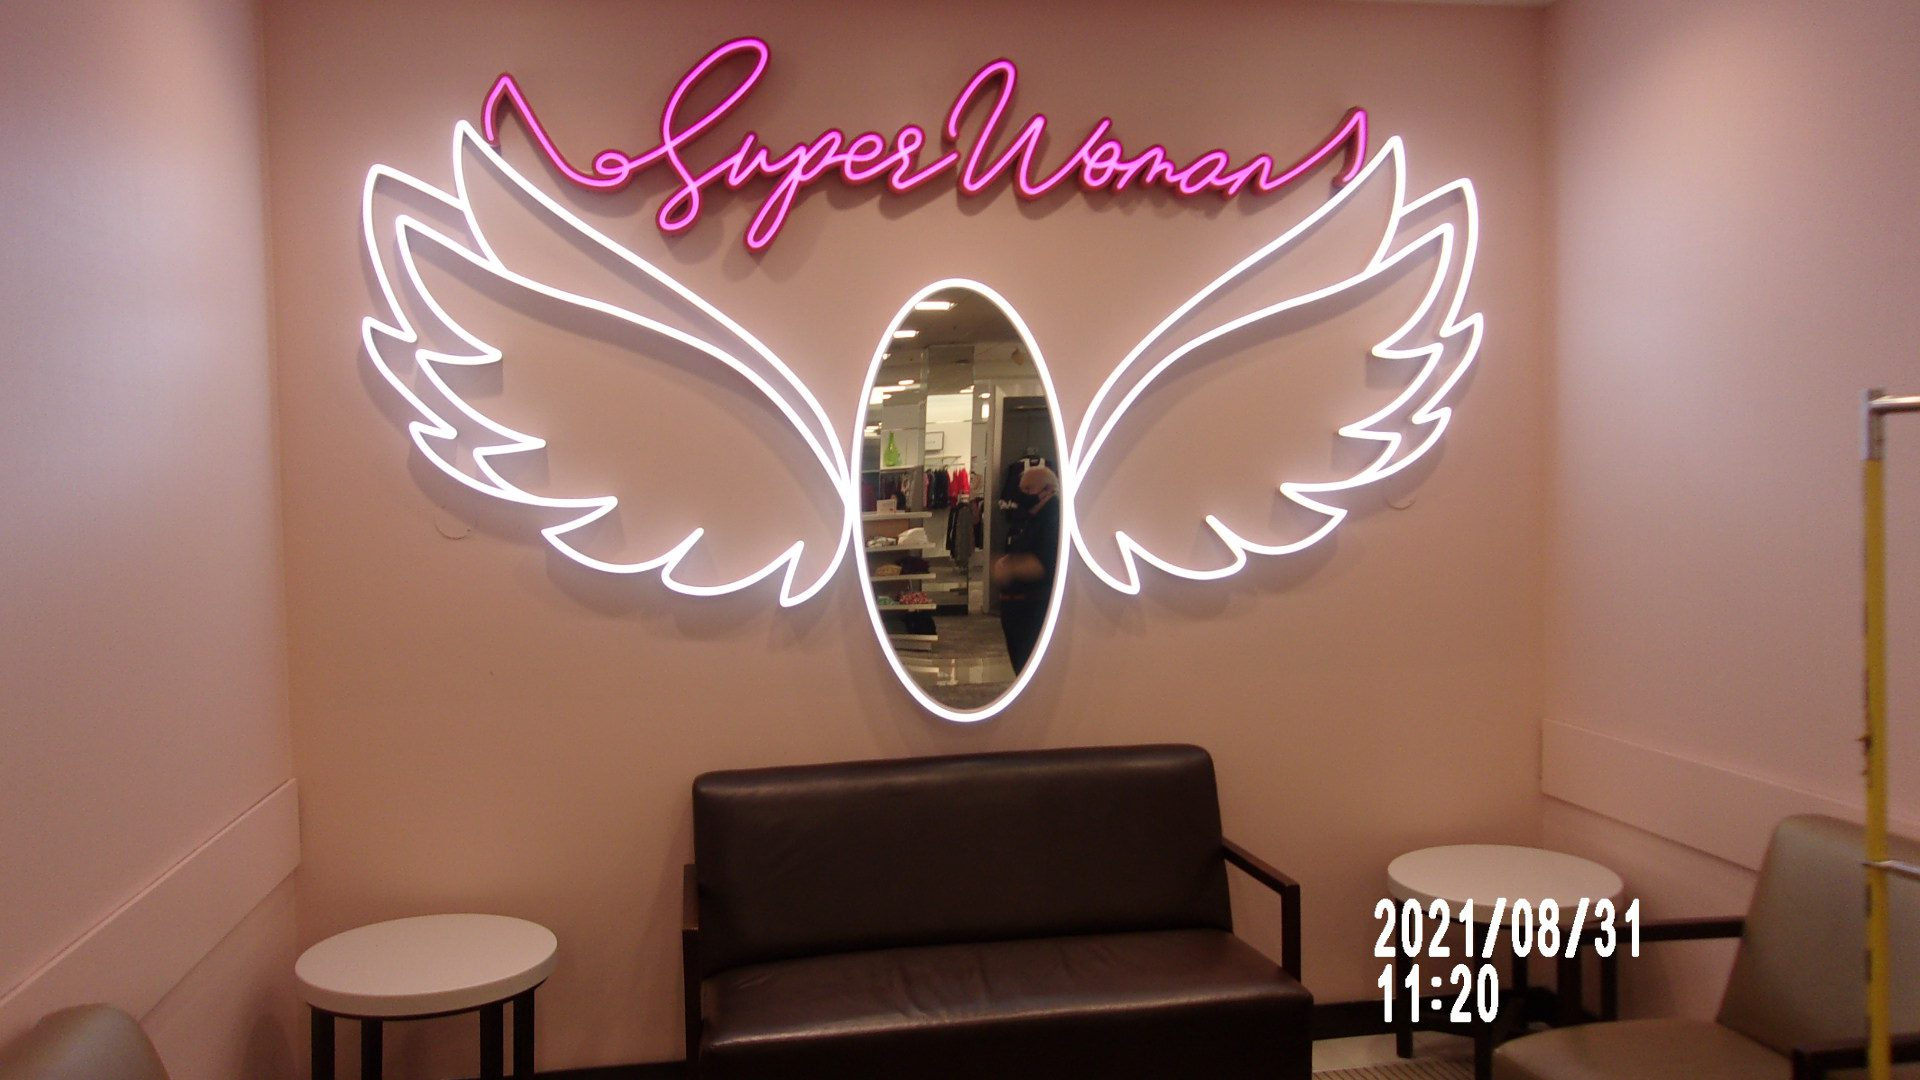 custom neon sign - local sign company and business sign maker with led conversion in nashville - Joslin Sons Signs